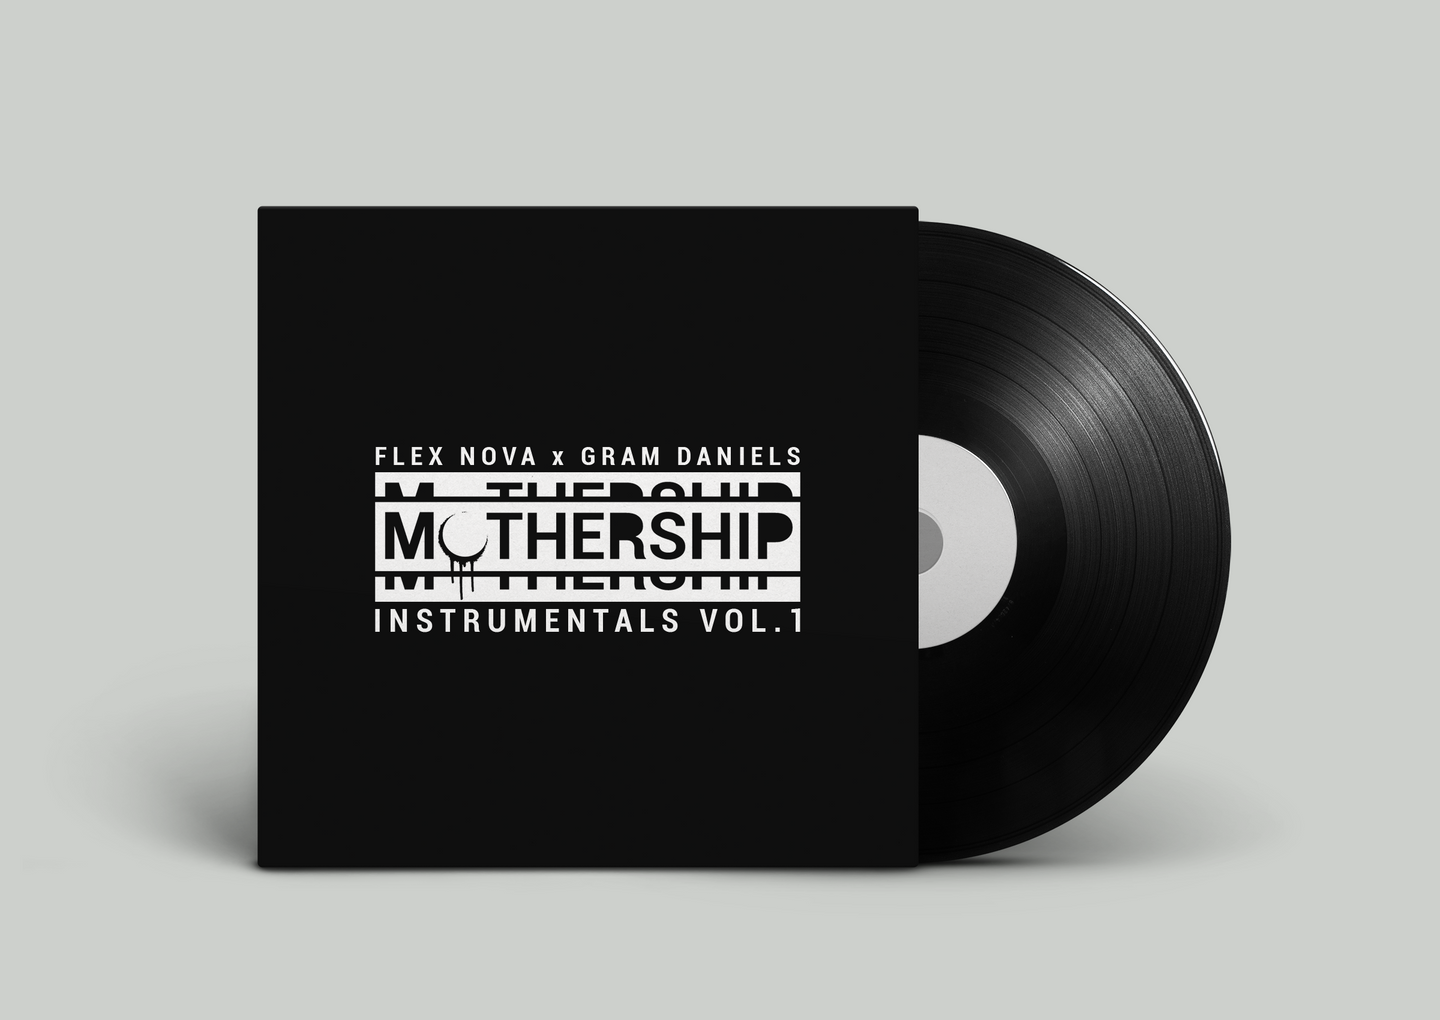 MOTHERSHIP Instrumentals Vol. 1 - Flex Nova & Gram Daniels [Digital Download]